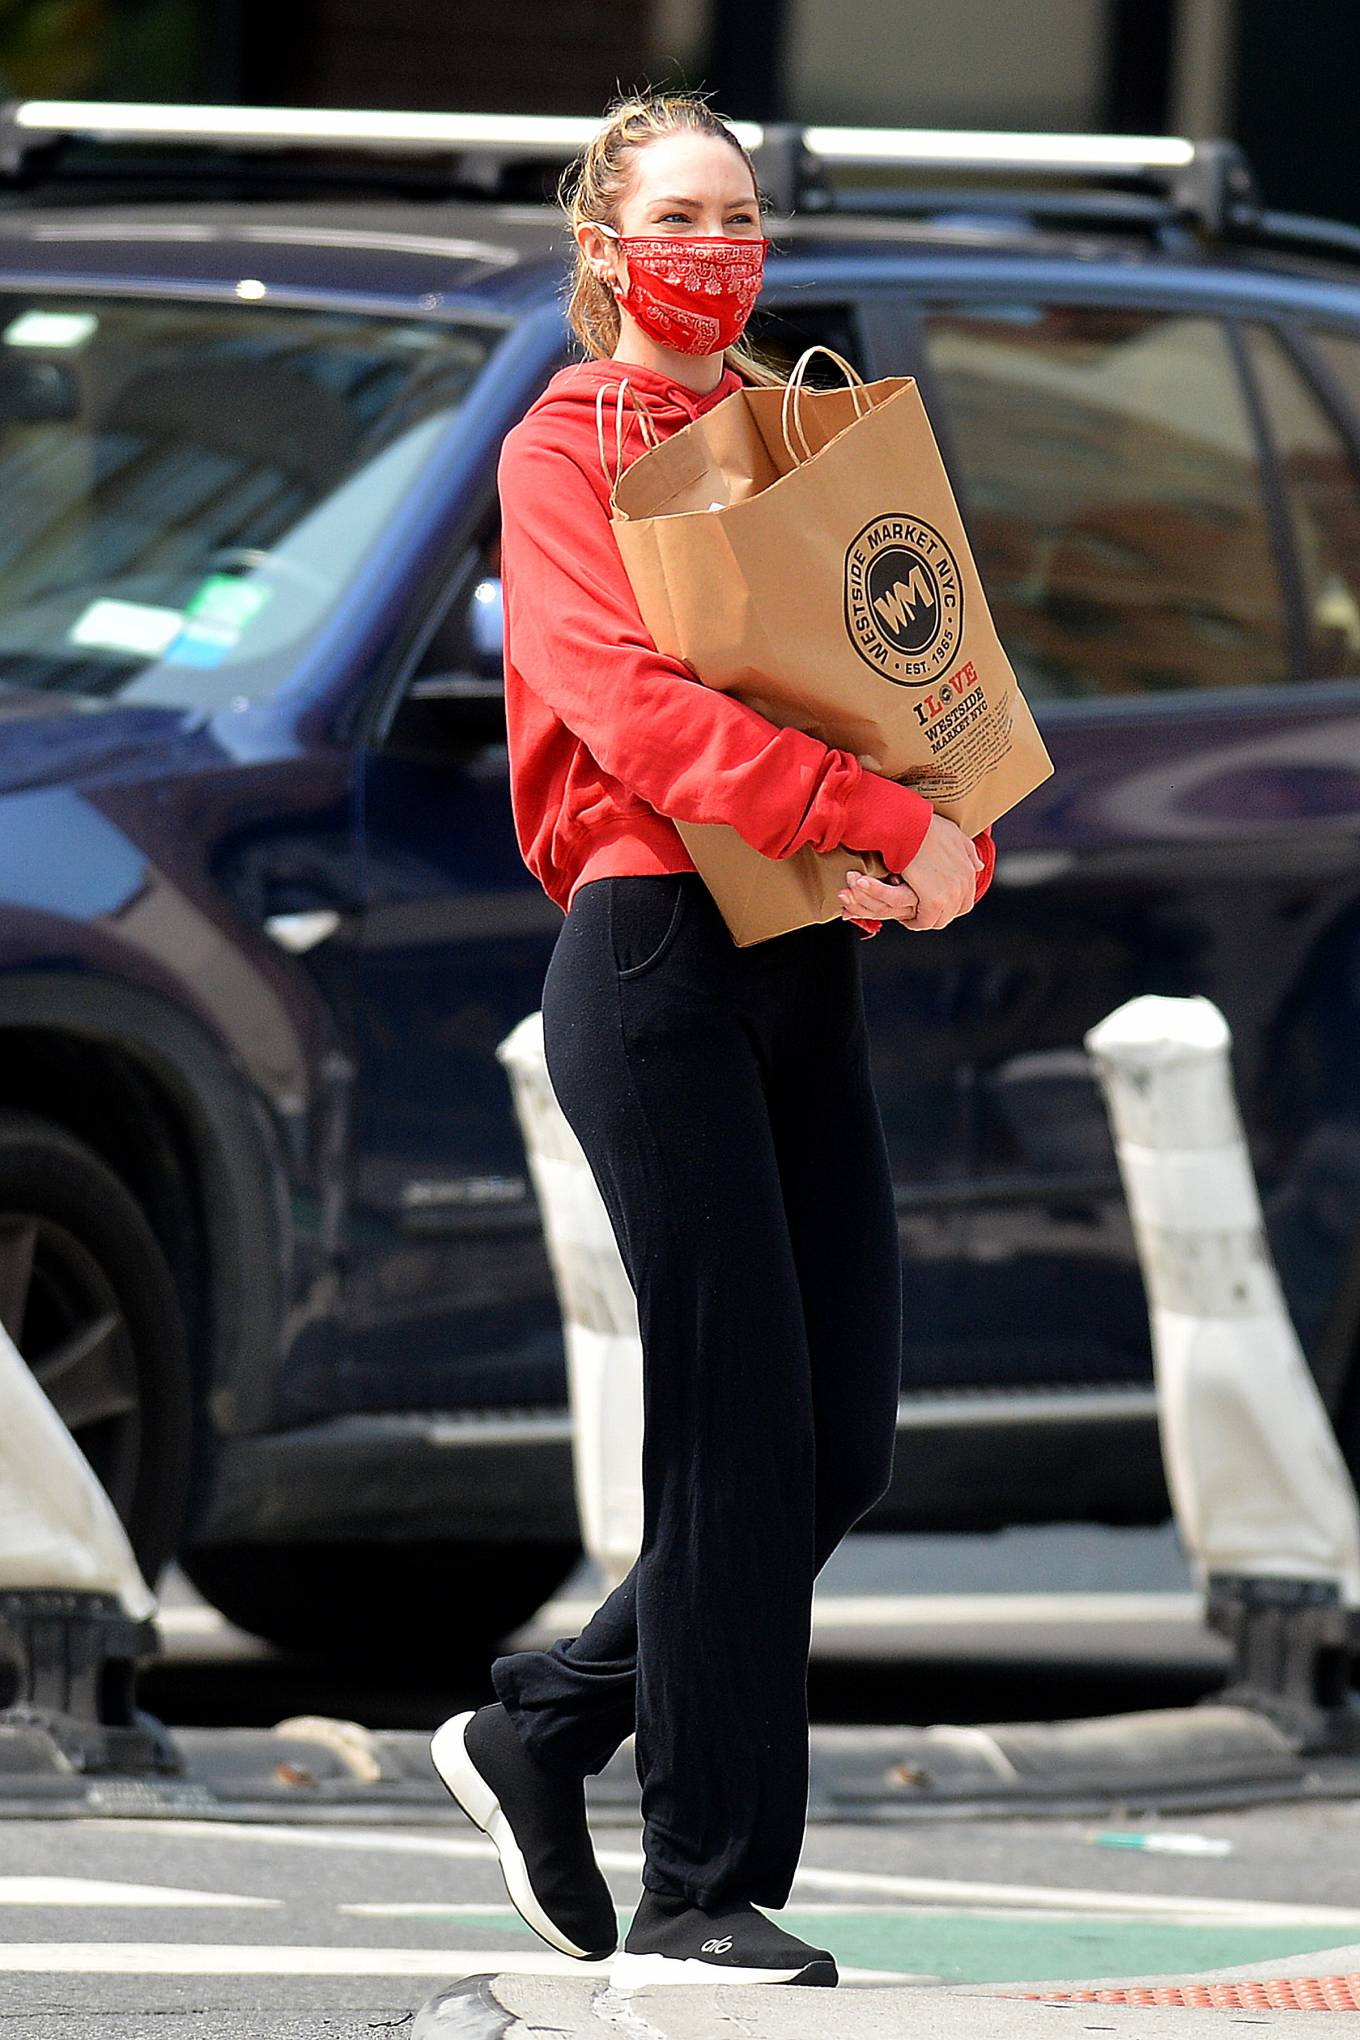 Candice Swanepoel 2020 : Candice Swanepoel – Grocery shopping candids in New York City -05